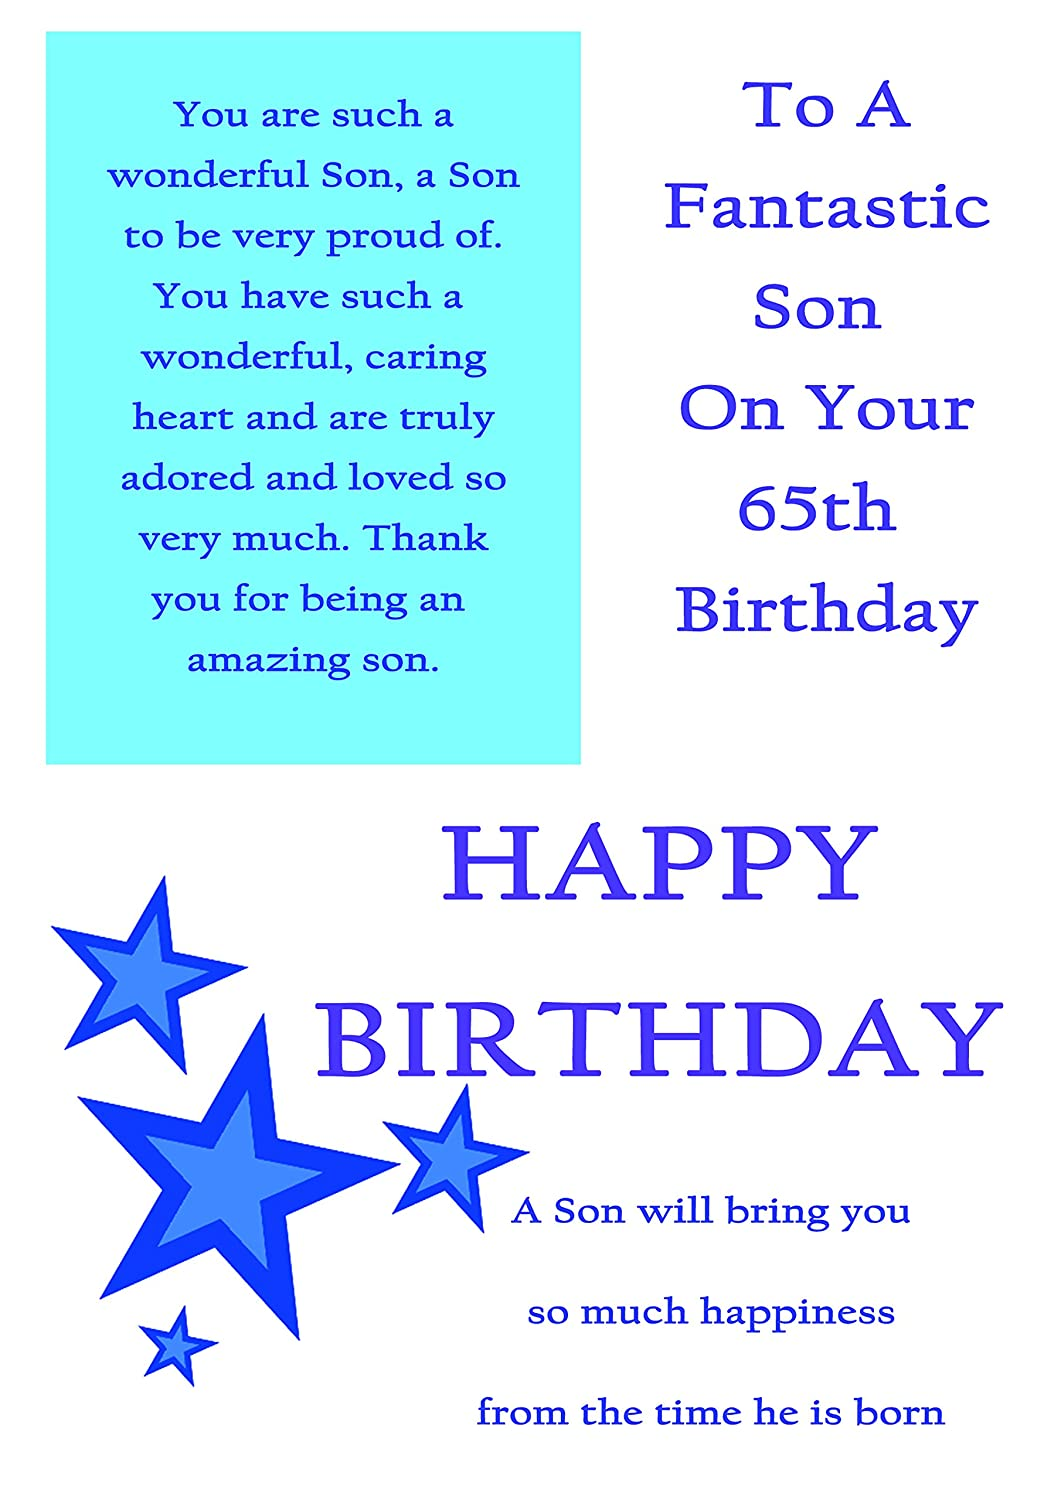 Son 65th Birthday Card With Removable Laminate Amazoncouk Office Products